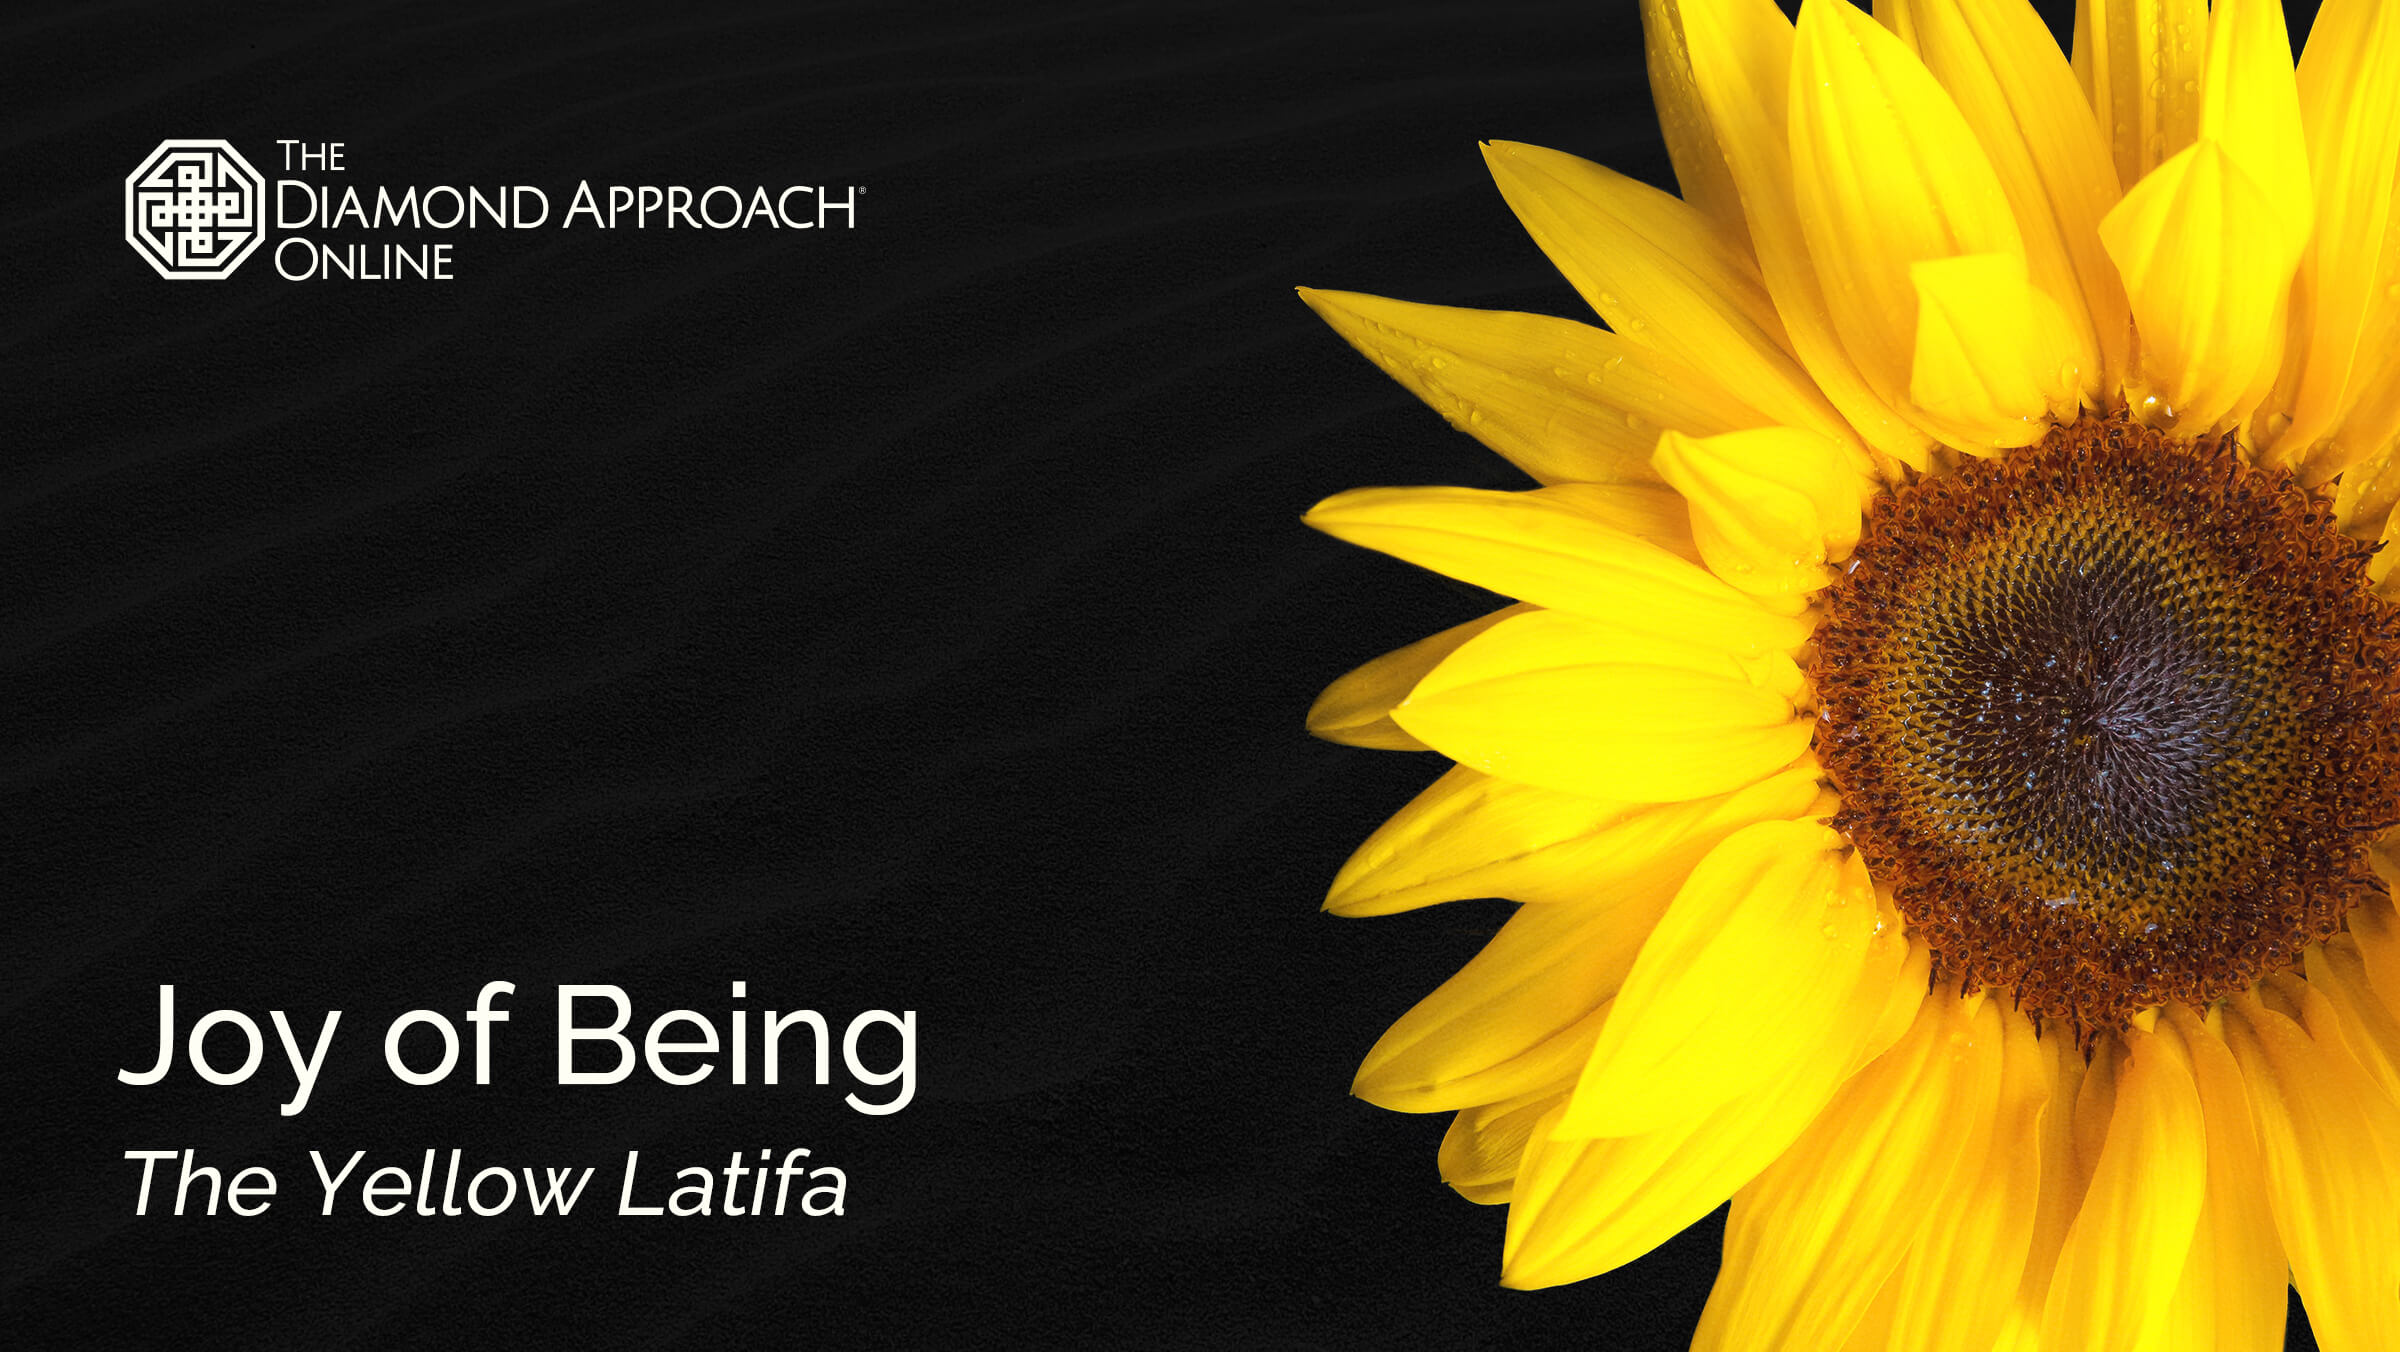 Joy of Being: The Yellow Latifa